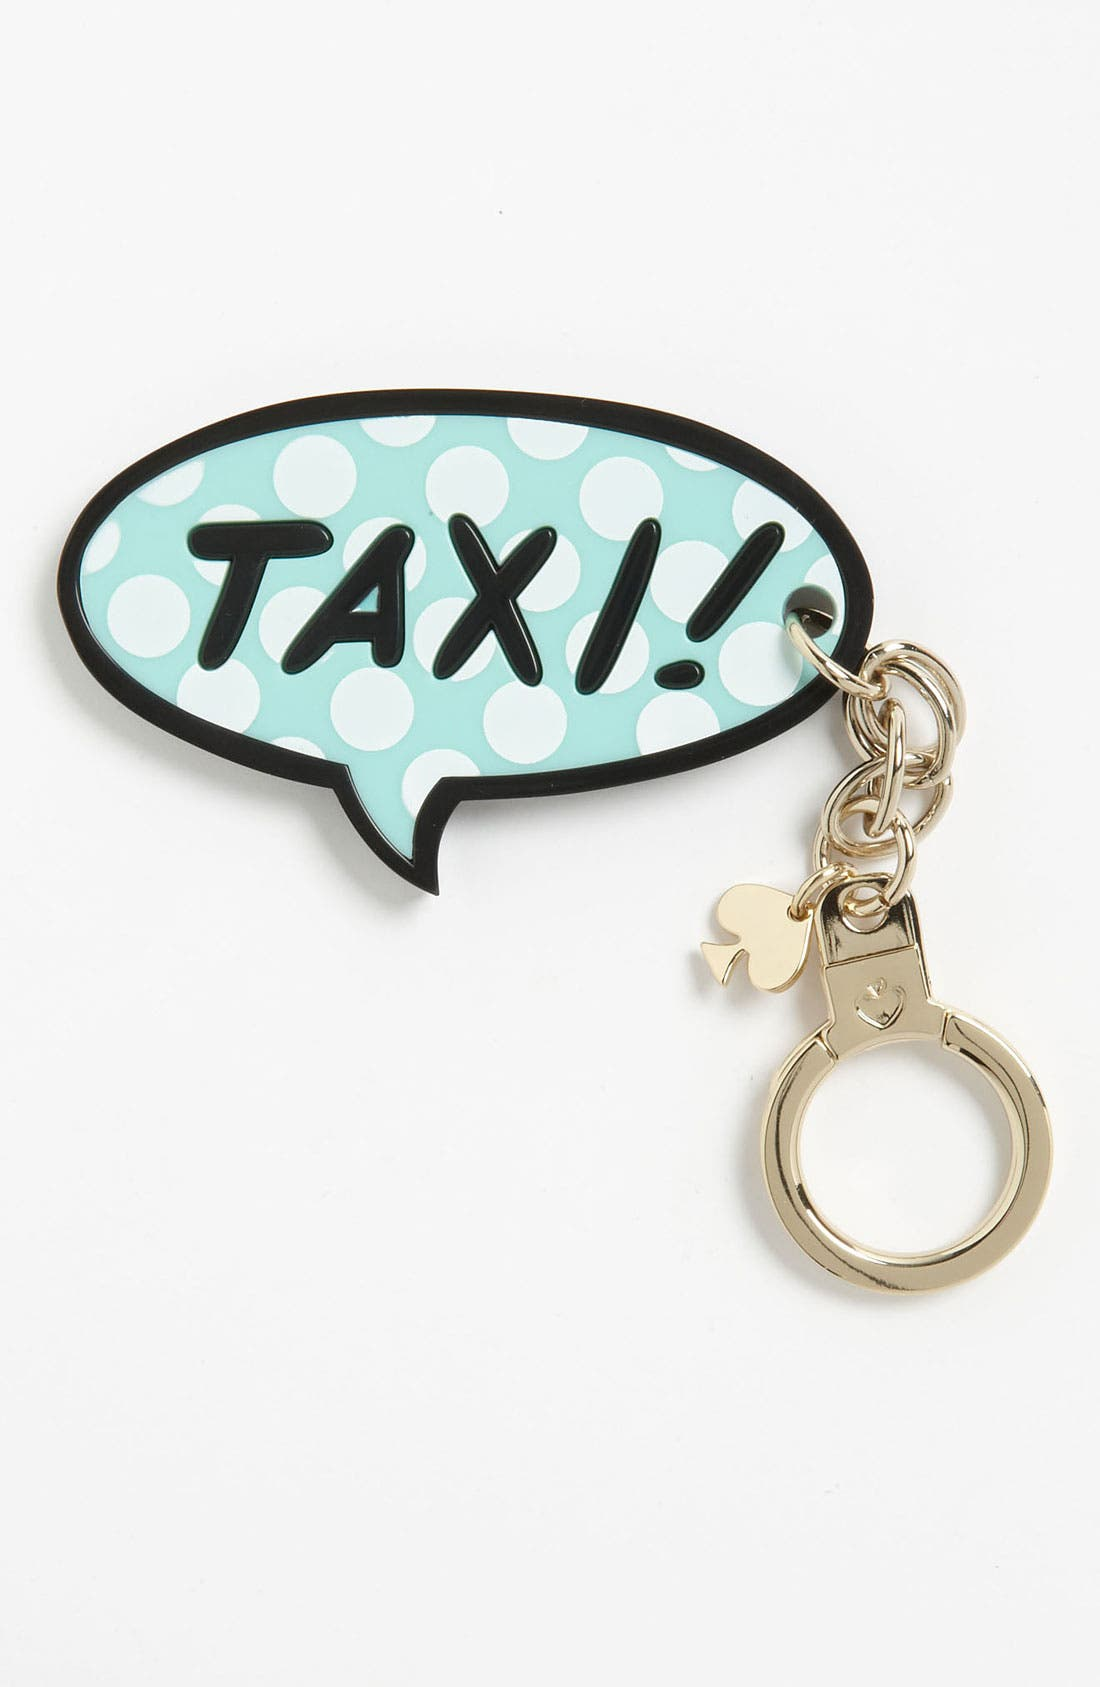 Alternate Image 1 Selected - kate spade new york 'taxi' key ring